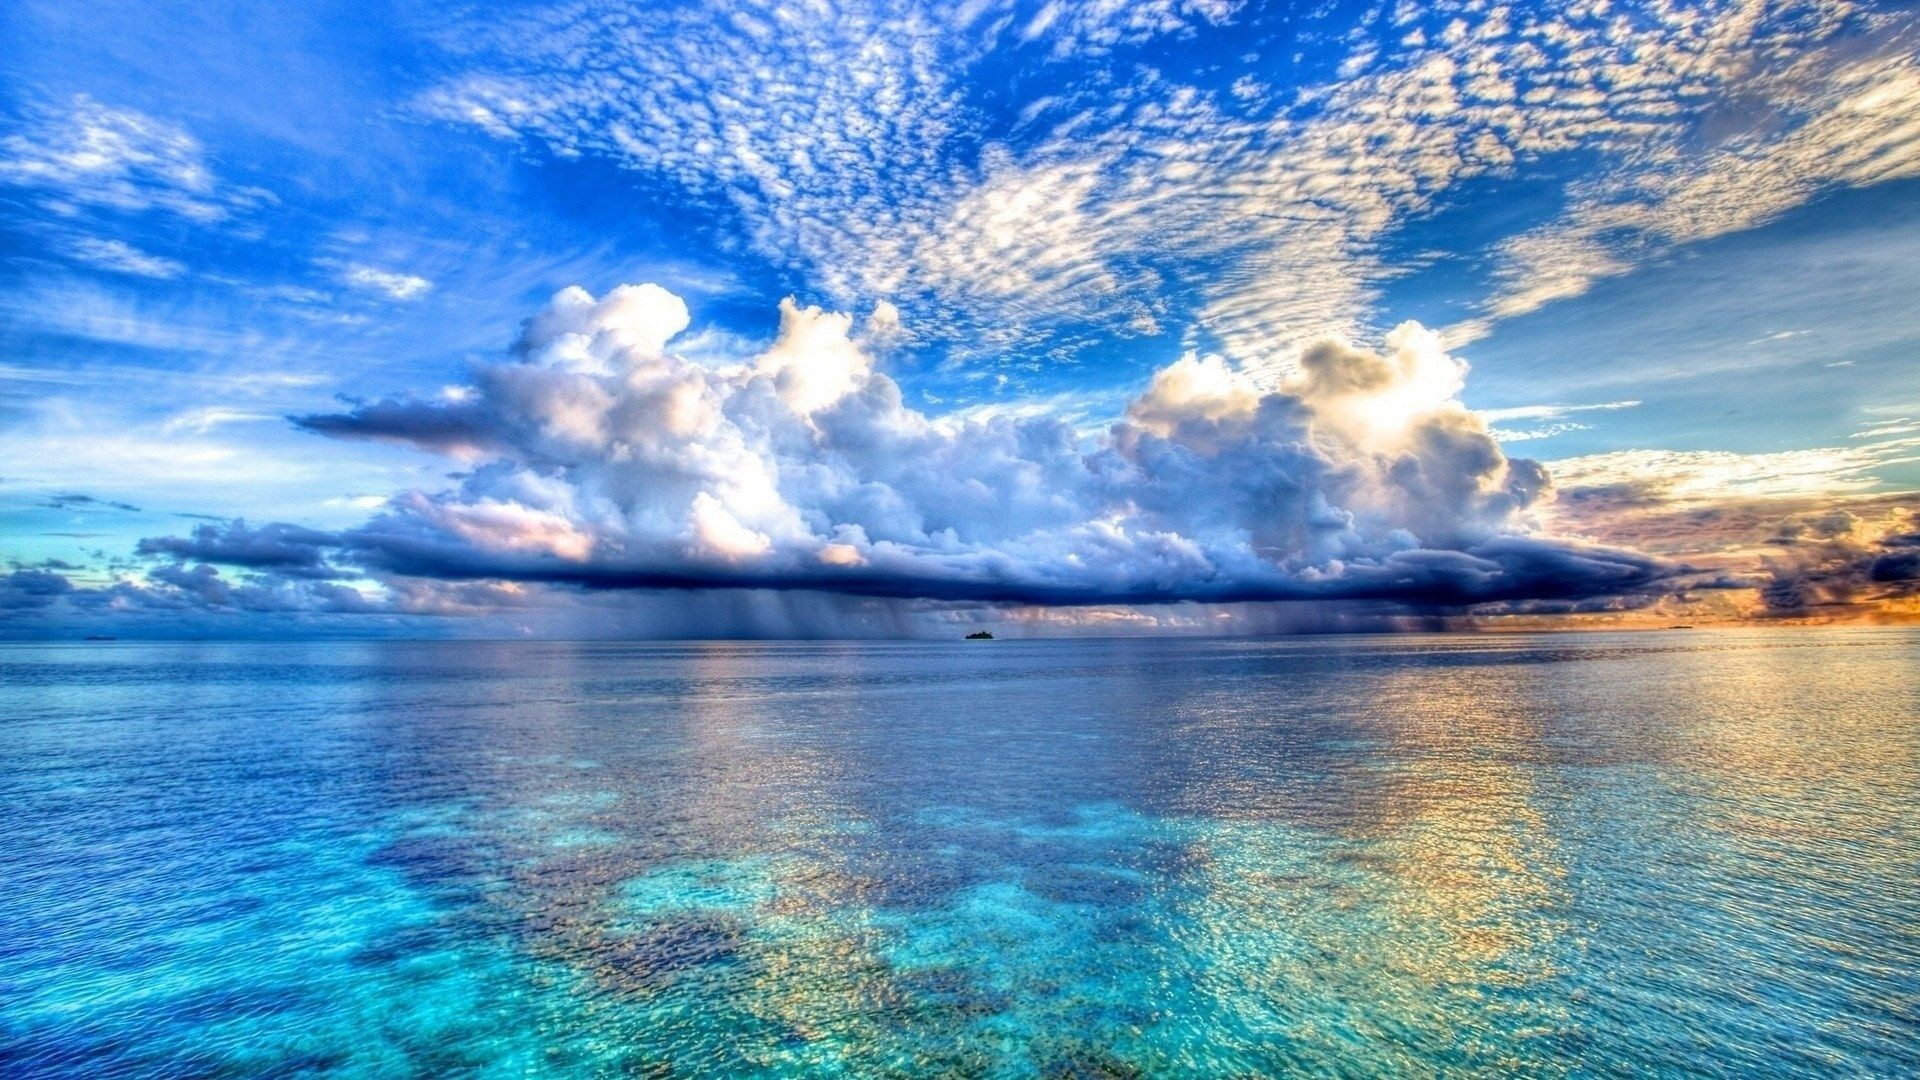 Res: 1920x1080, nature blue sea and clouds backgrounds wallpapers hd